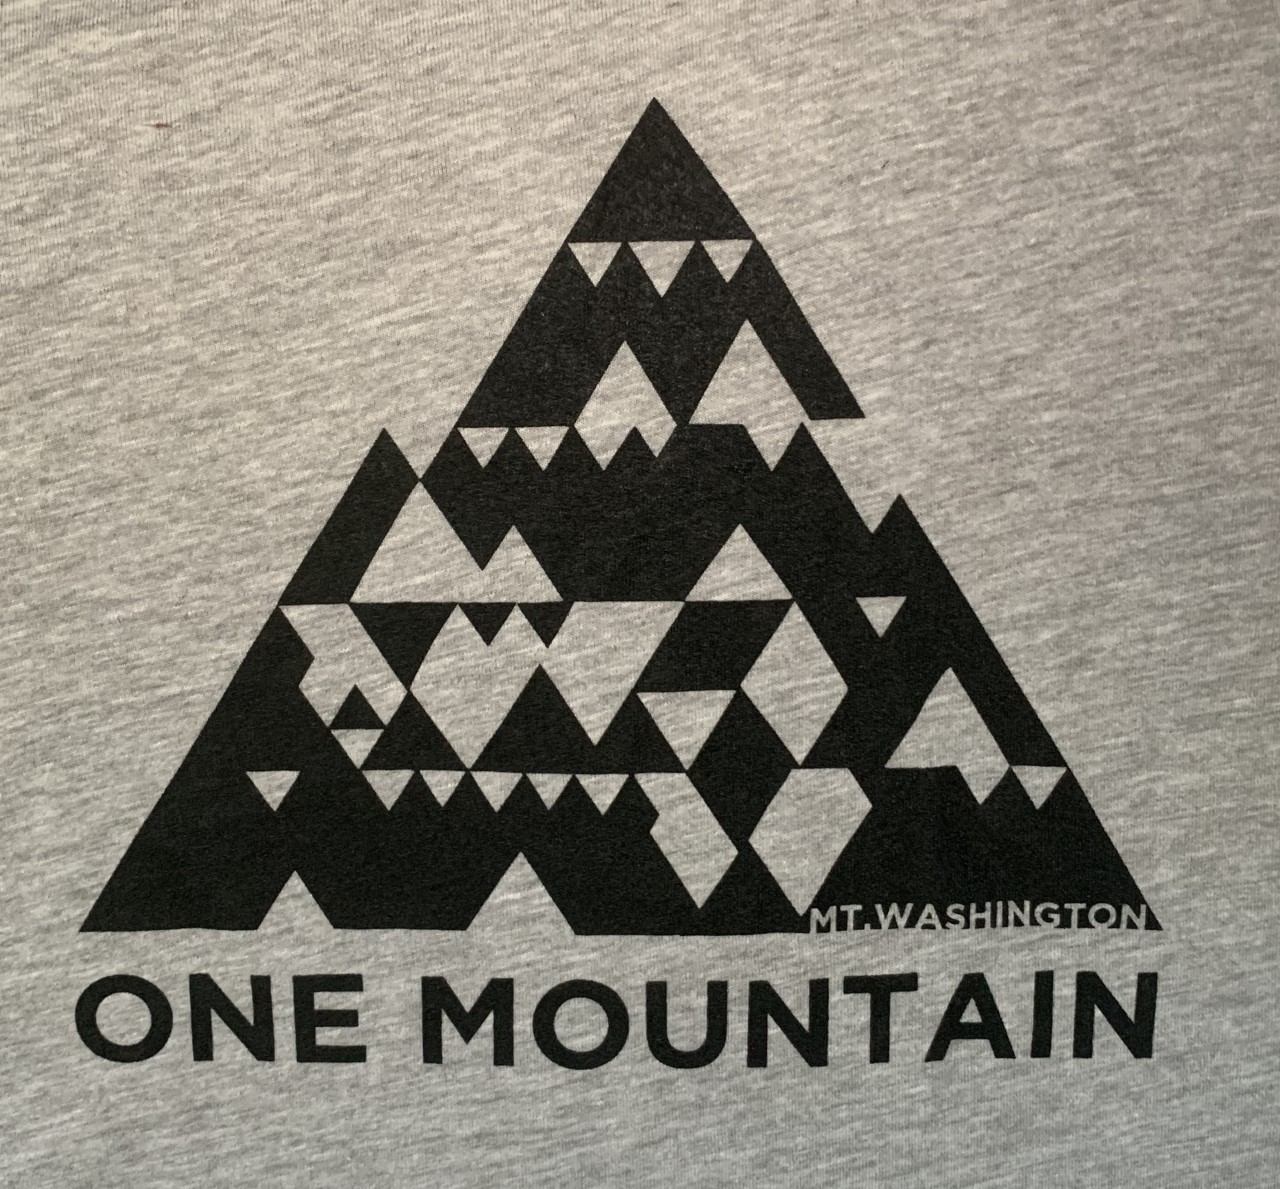 Youth Crewneck Tee - Heather Grey/Black One Mountain